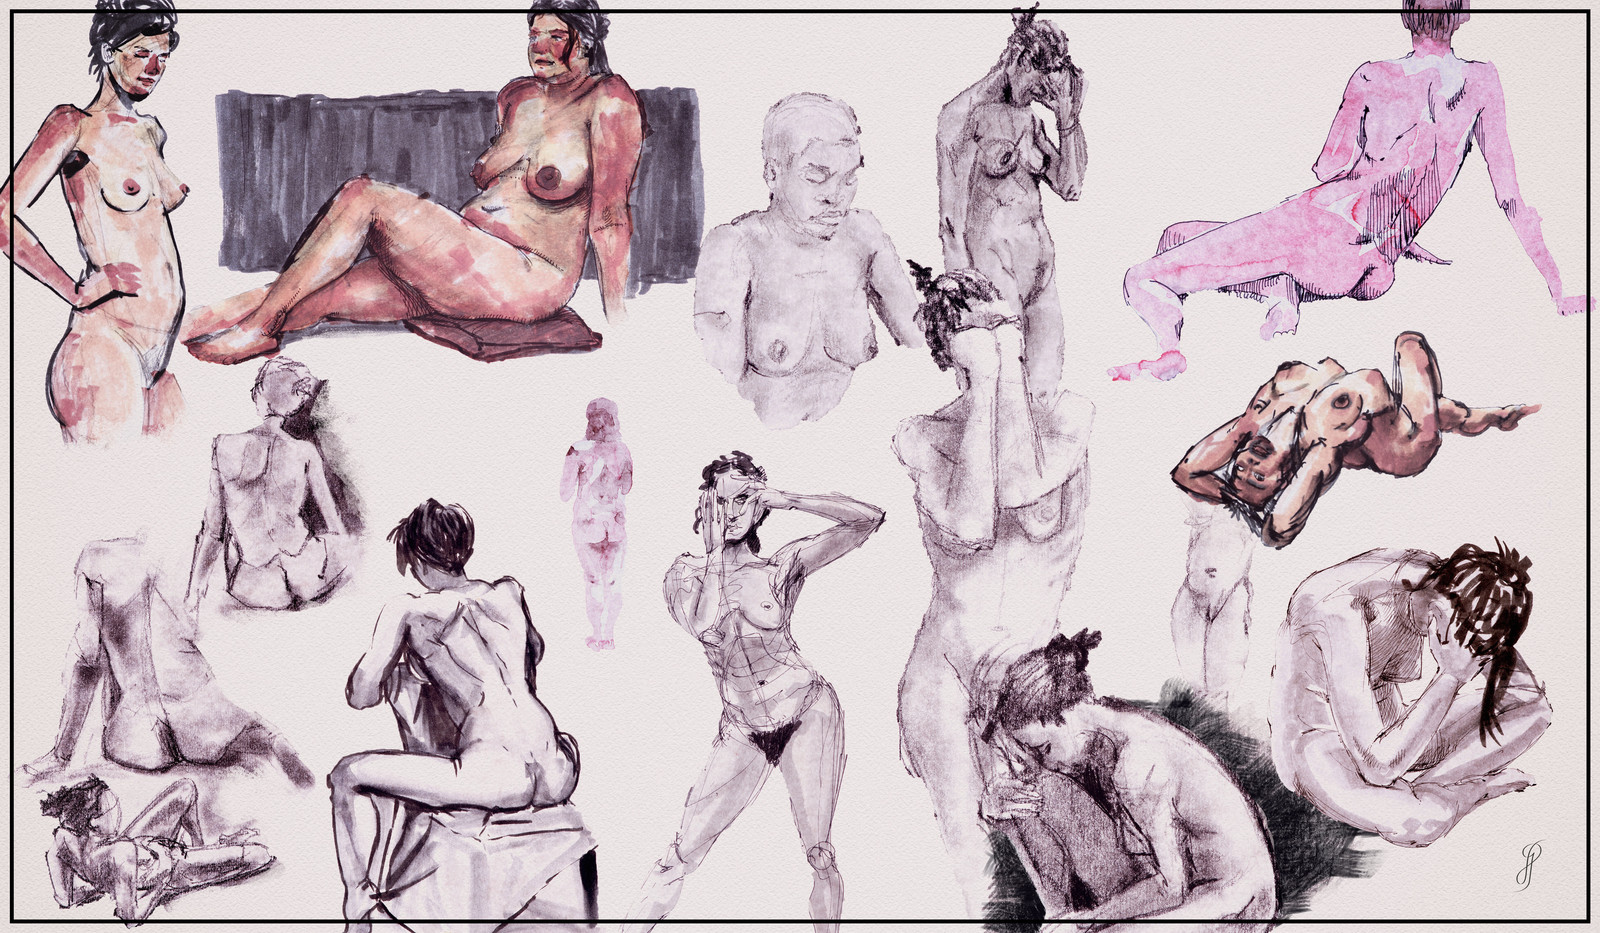 Female Nude Poses - Life Drawings